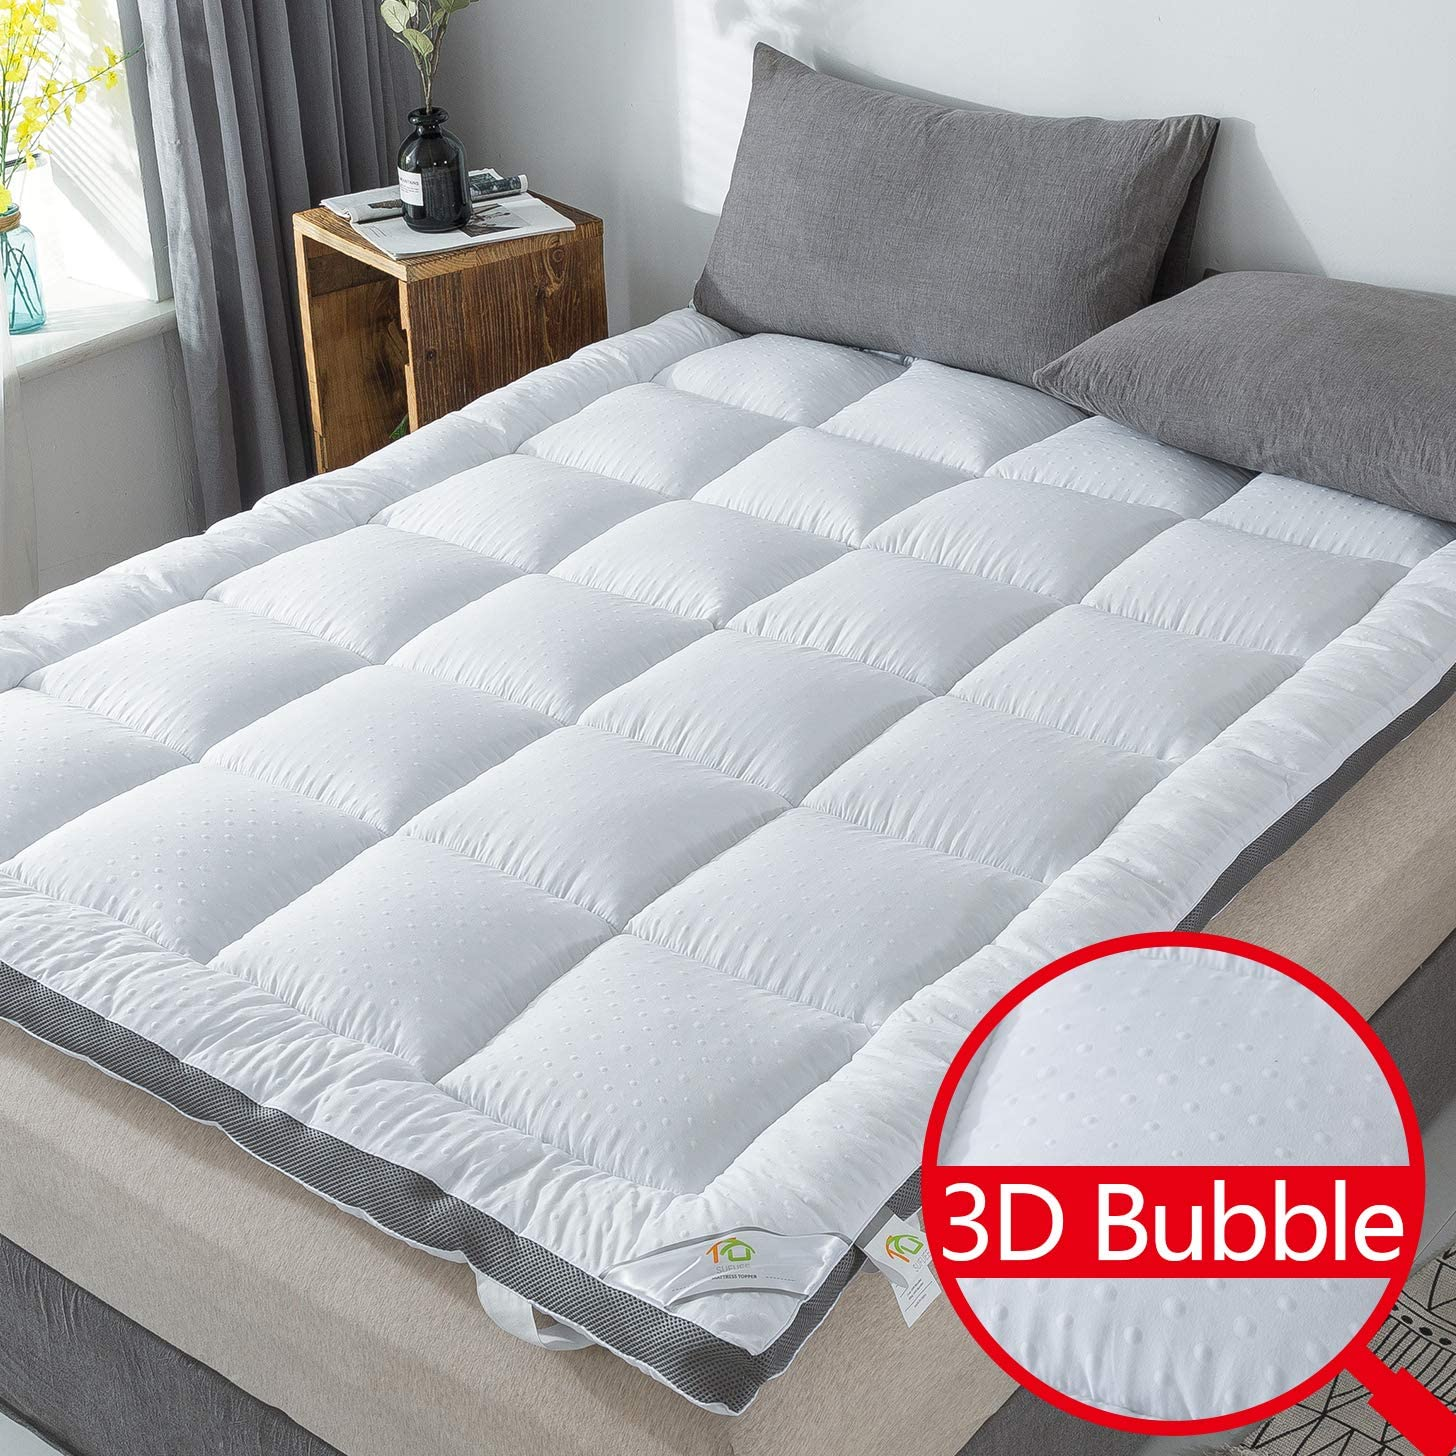 SUFUEE Mattress Topper King Air-Flow 3D Bubble Fabric Thick Quilted Alternative Down Pillow Top Mattress Cover Plush Hotel Quality